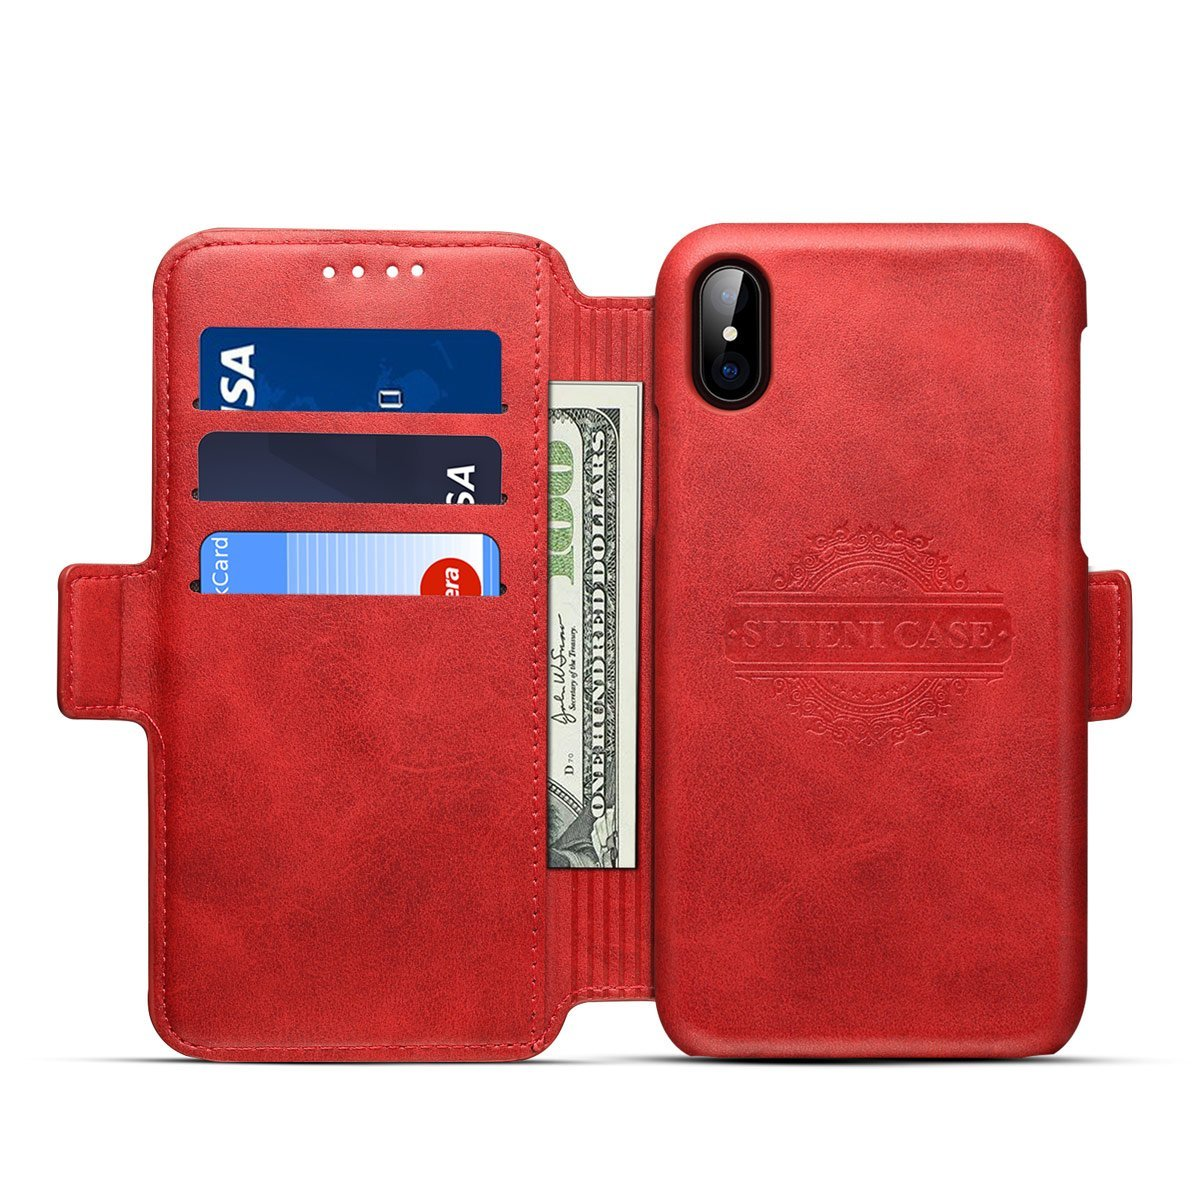 Scheam iPhone X Flip Cover, Case, Skins Card Slot [Stand Feature] Leather Wallet Case Vintage Book Style Magnetic Protective Cover Holder for iPhone X - Red by Scheam (Image #7)